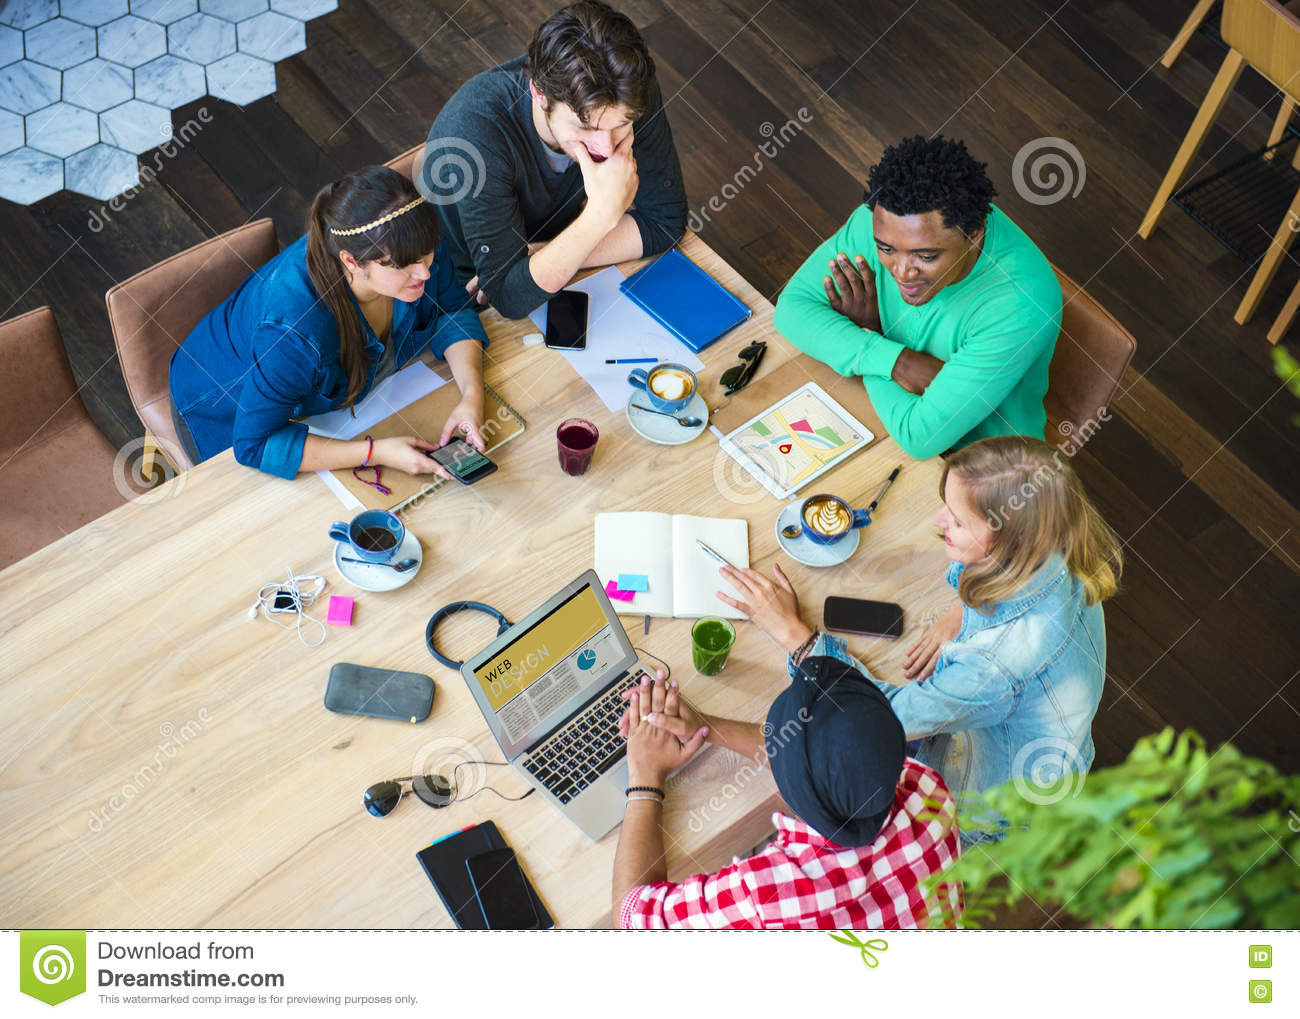 133 Ideas Creativity Planning Office Working Cafe Concept Photos Free Royalty Free Stock Photos From Dreamstime